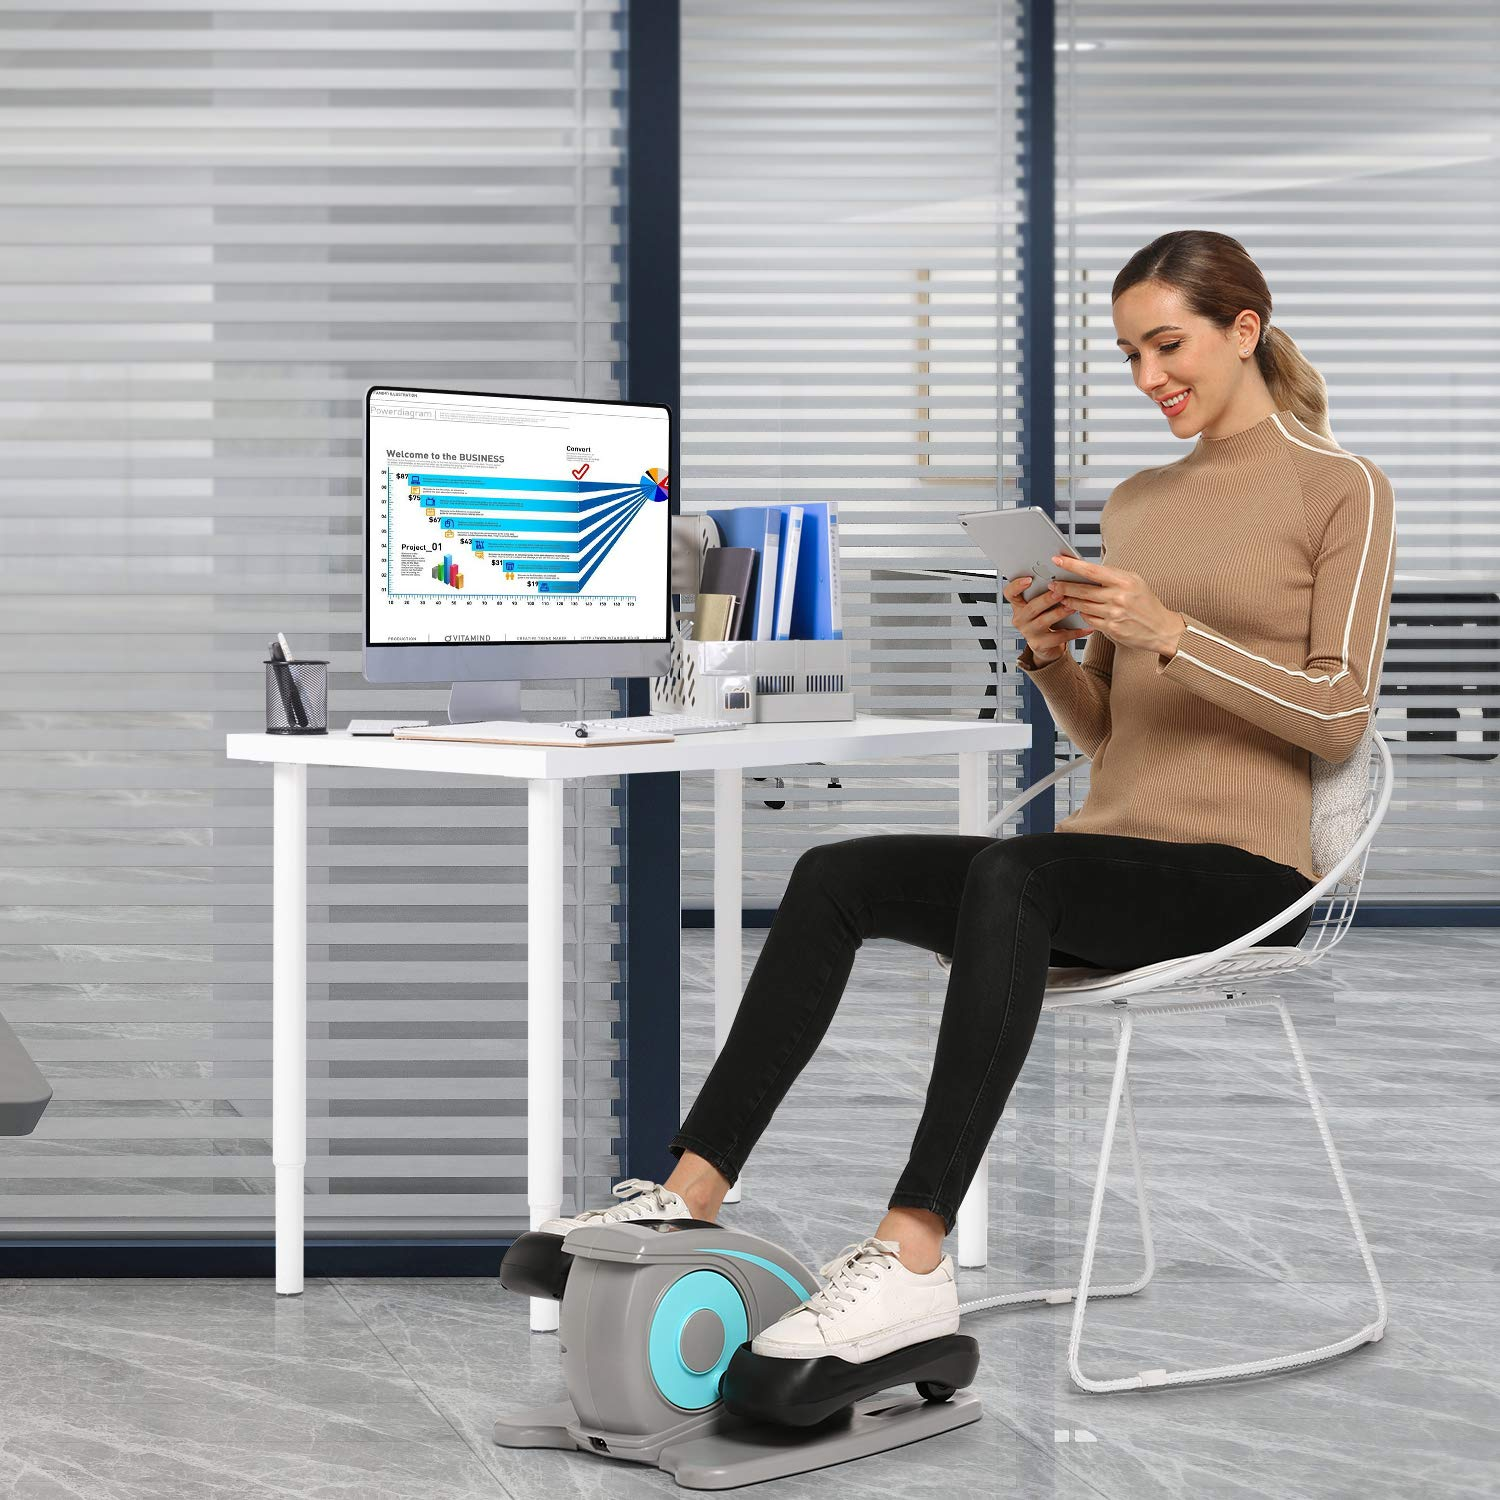 ANCHEER Desk Elliptical w/Built in Display Monitor, Quiet & Compact, Electric Elliptical Machine Trainer (Gray) by ANCHEER (Image #5)